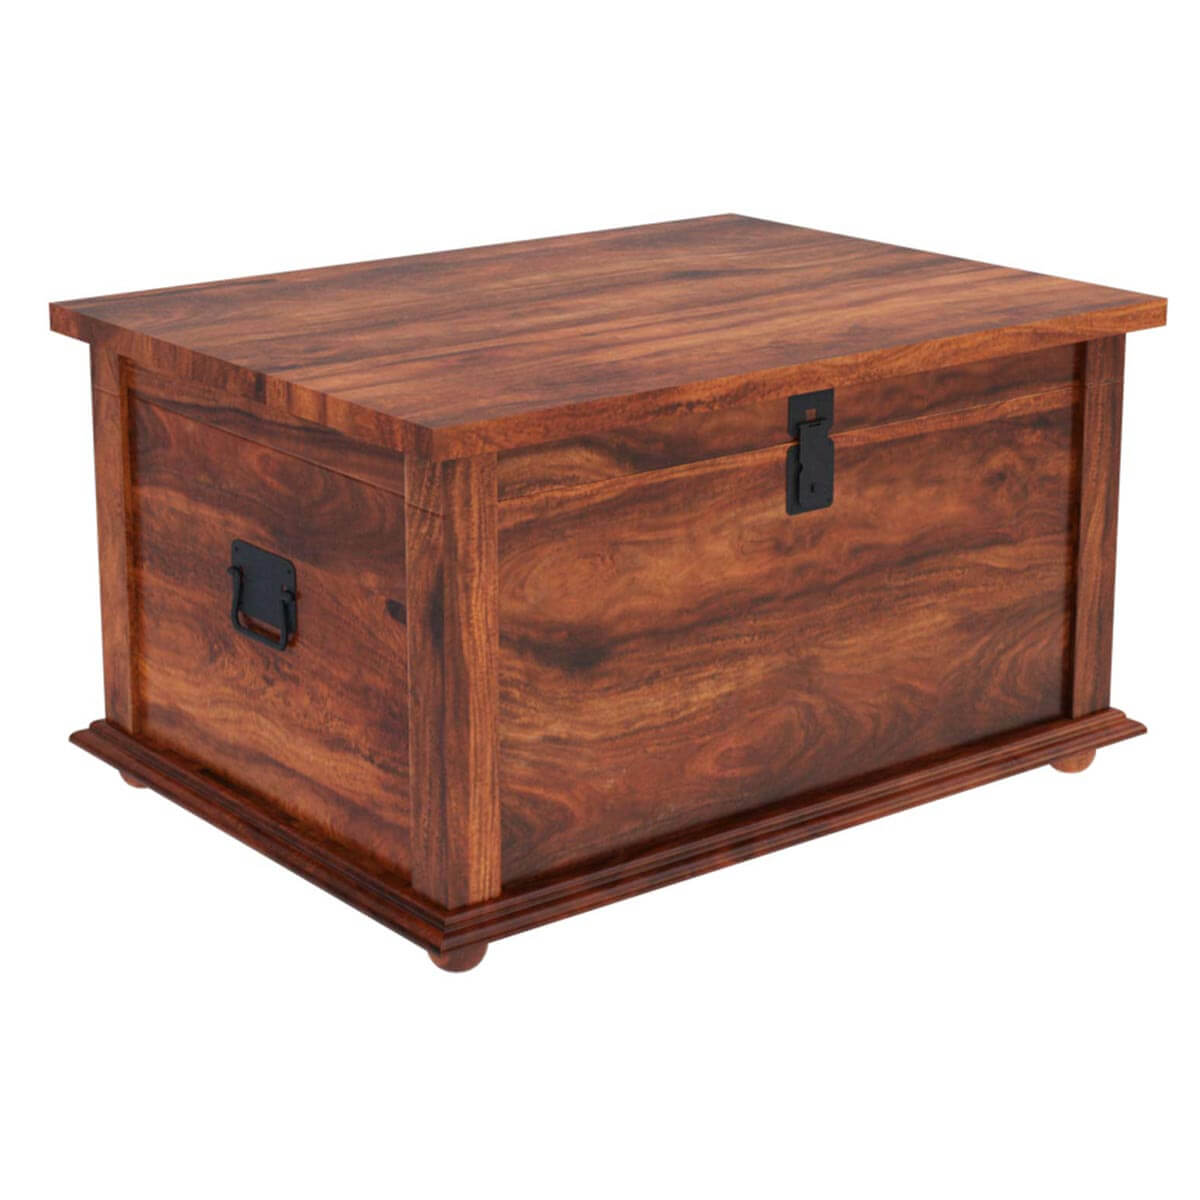 Wood Storage Grinnell Storage Chest Trunk Coffee Table